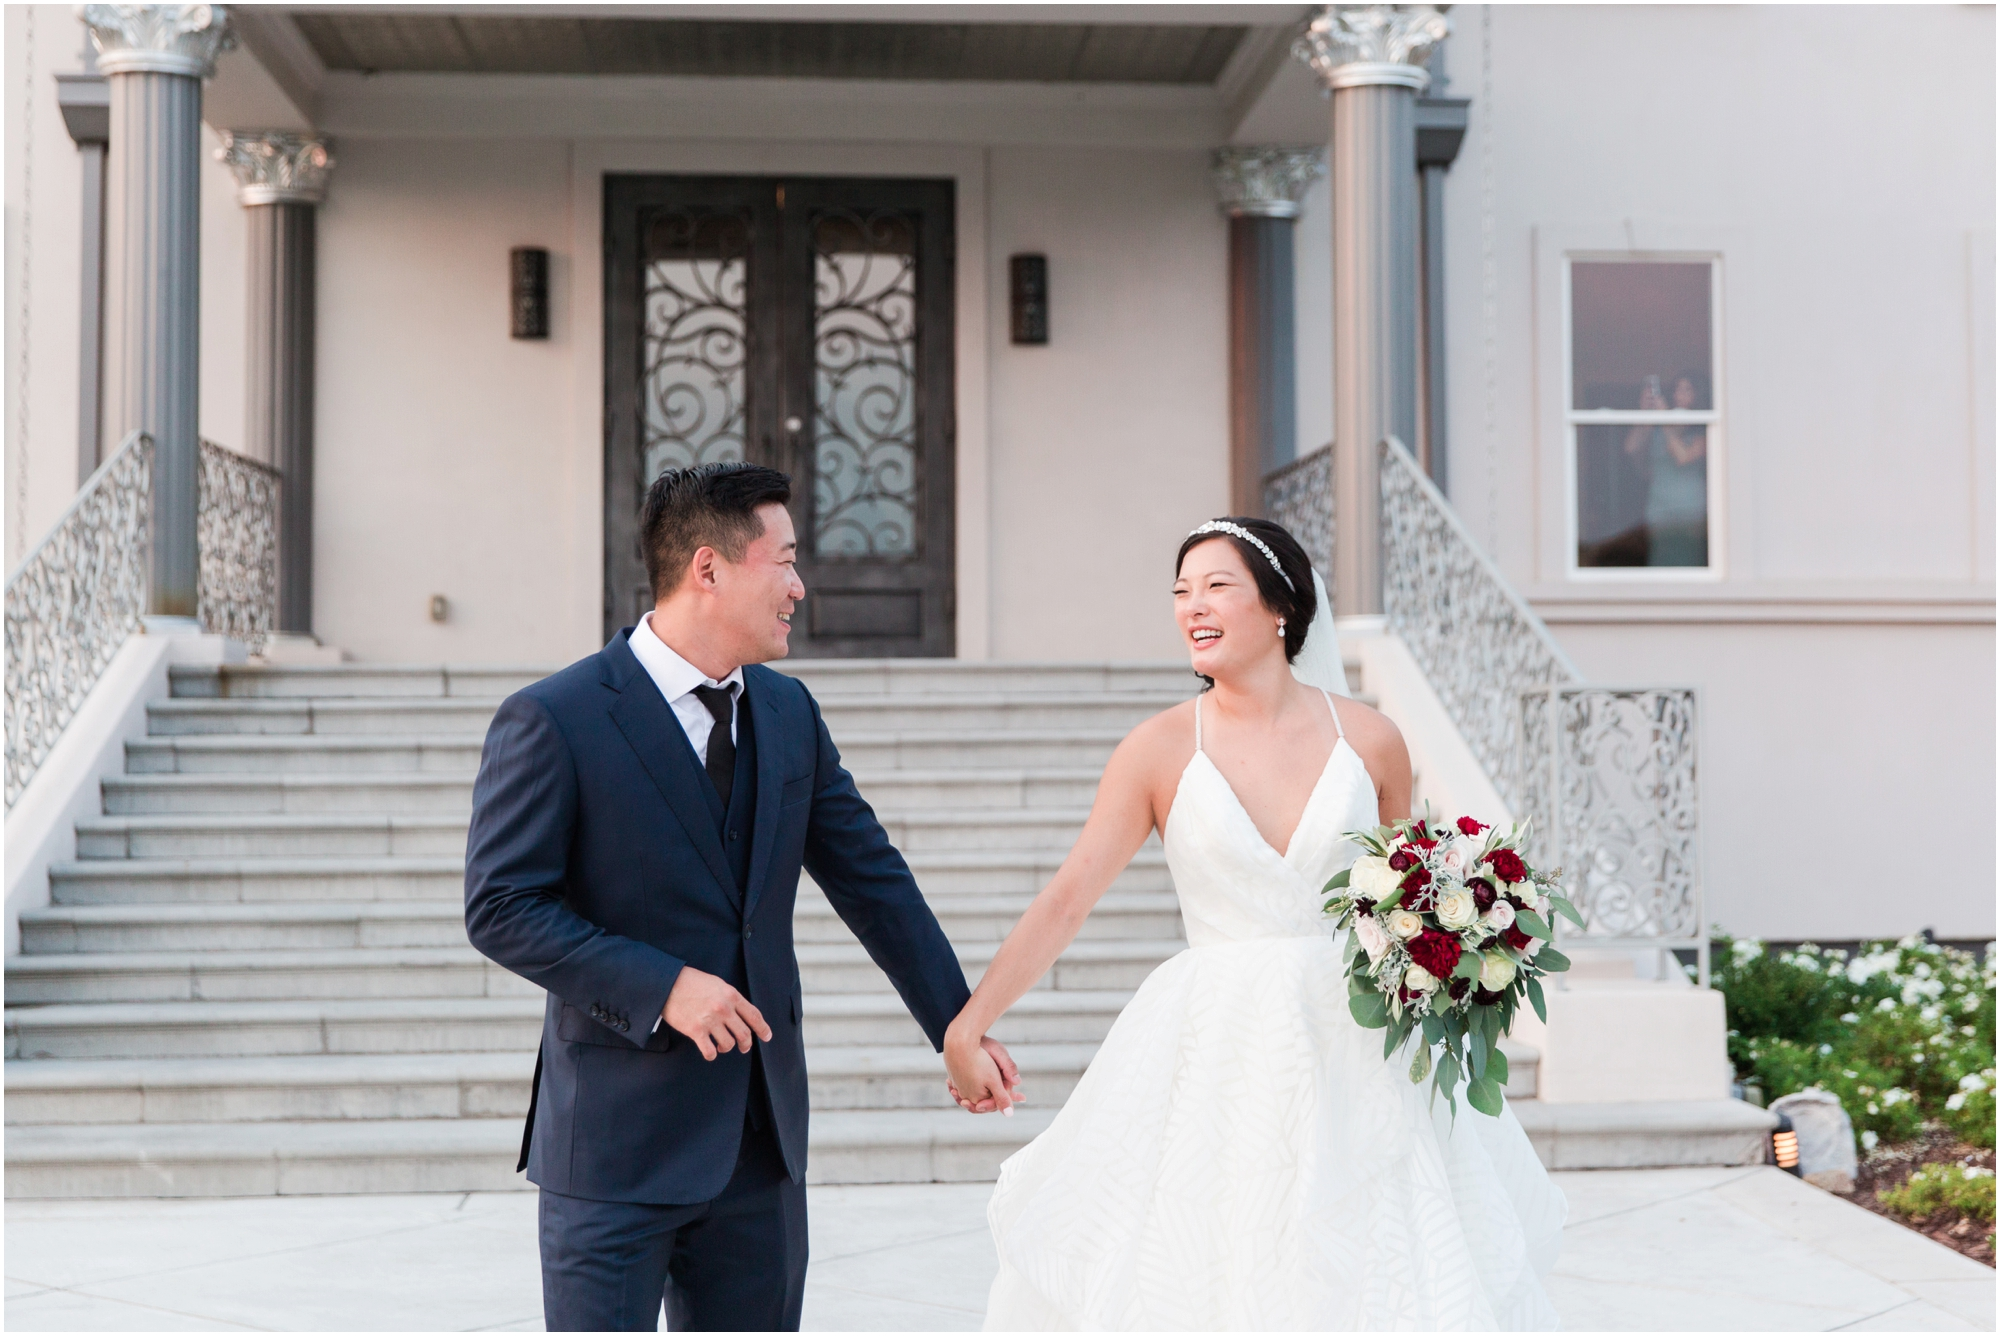 Willow Heights Mansion wedding pictures by Briana Calderon Photography_2219.jpg